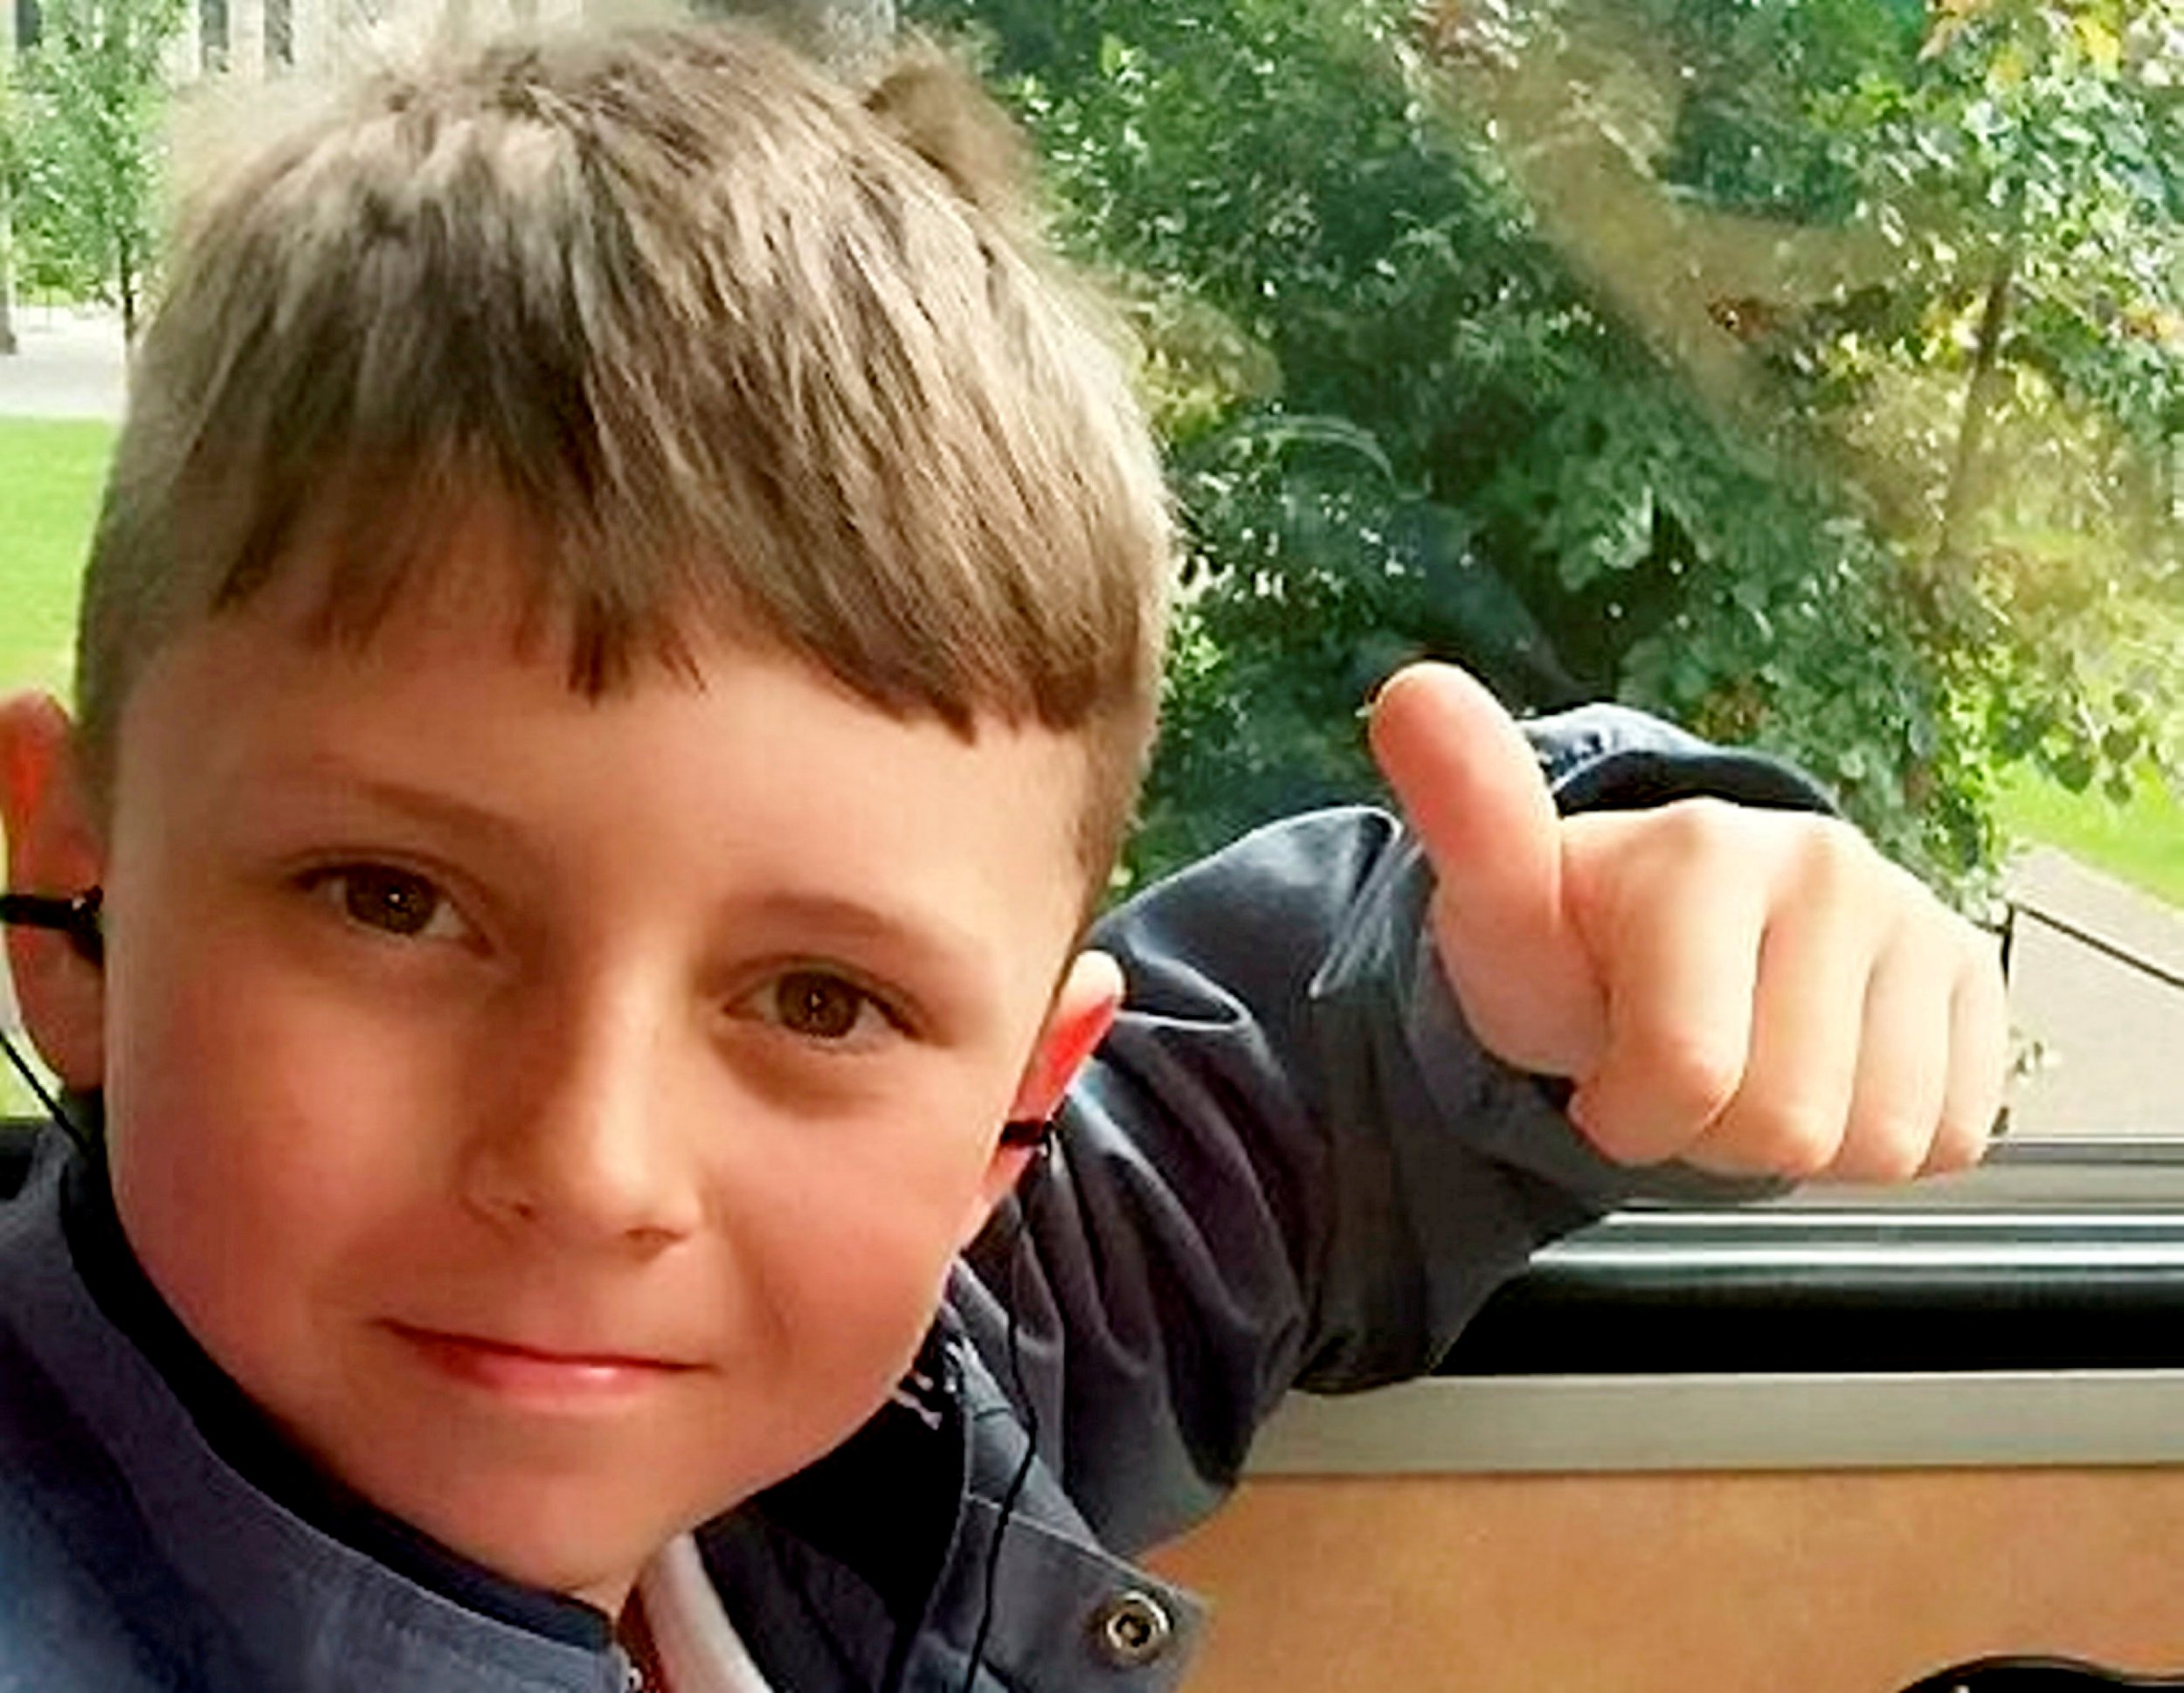 'Perfectly healthy' boy, 10, dies 72 hours after routine surgery to remove kidney stones